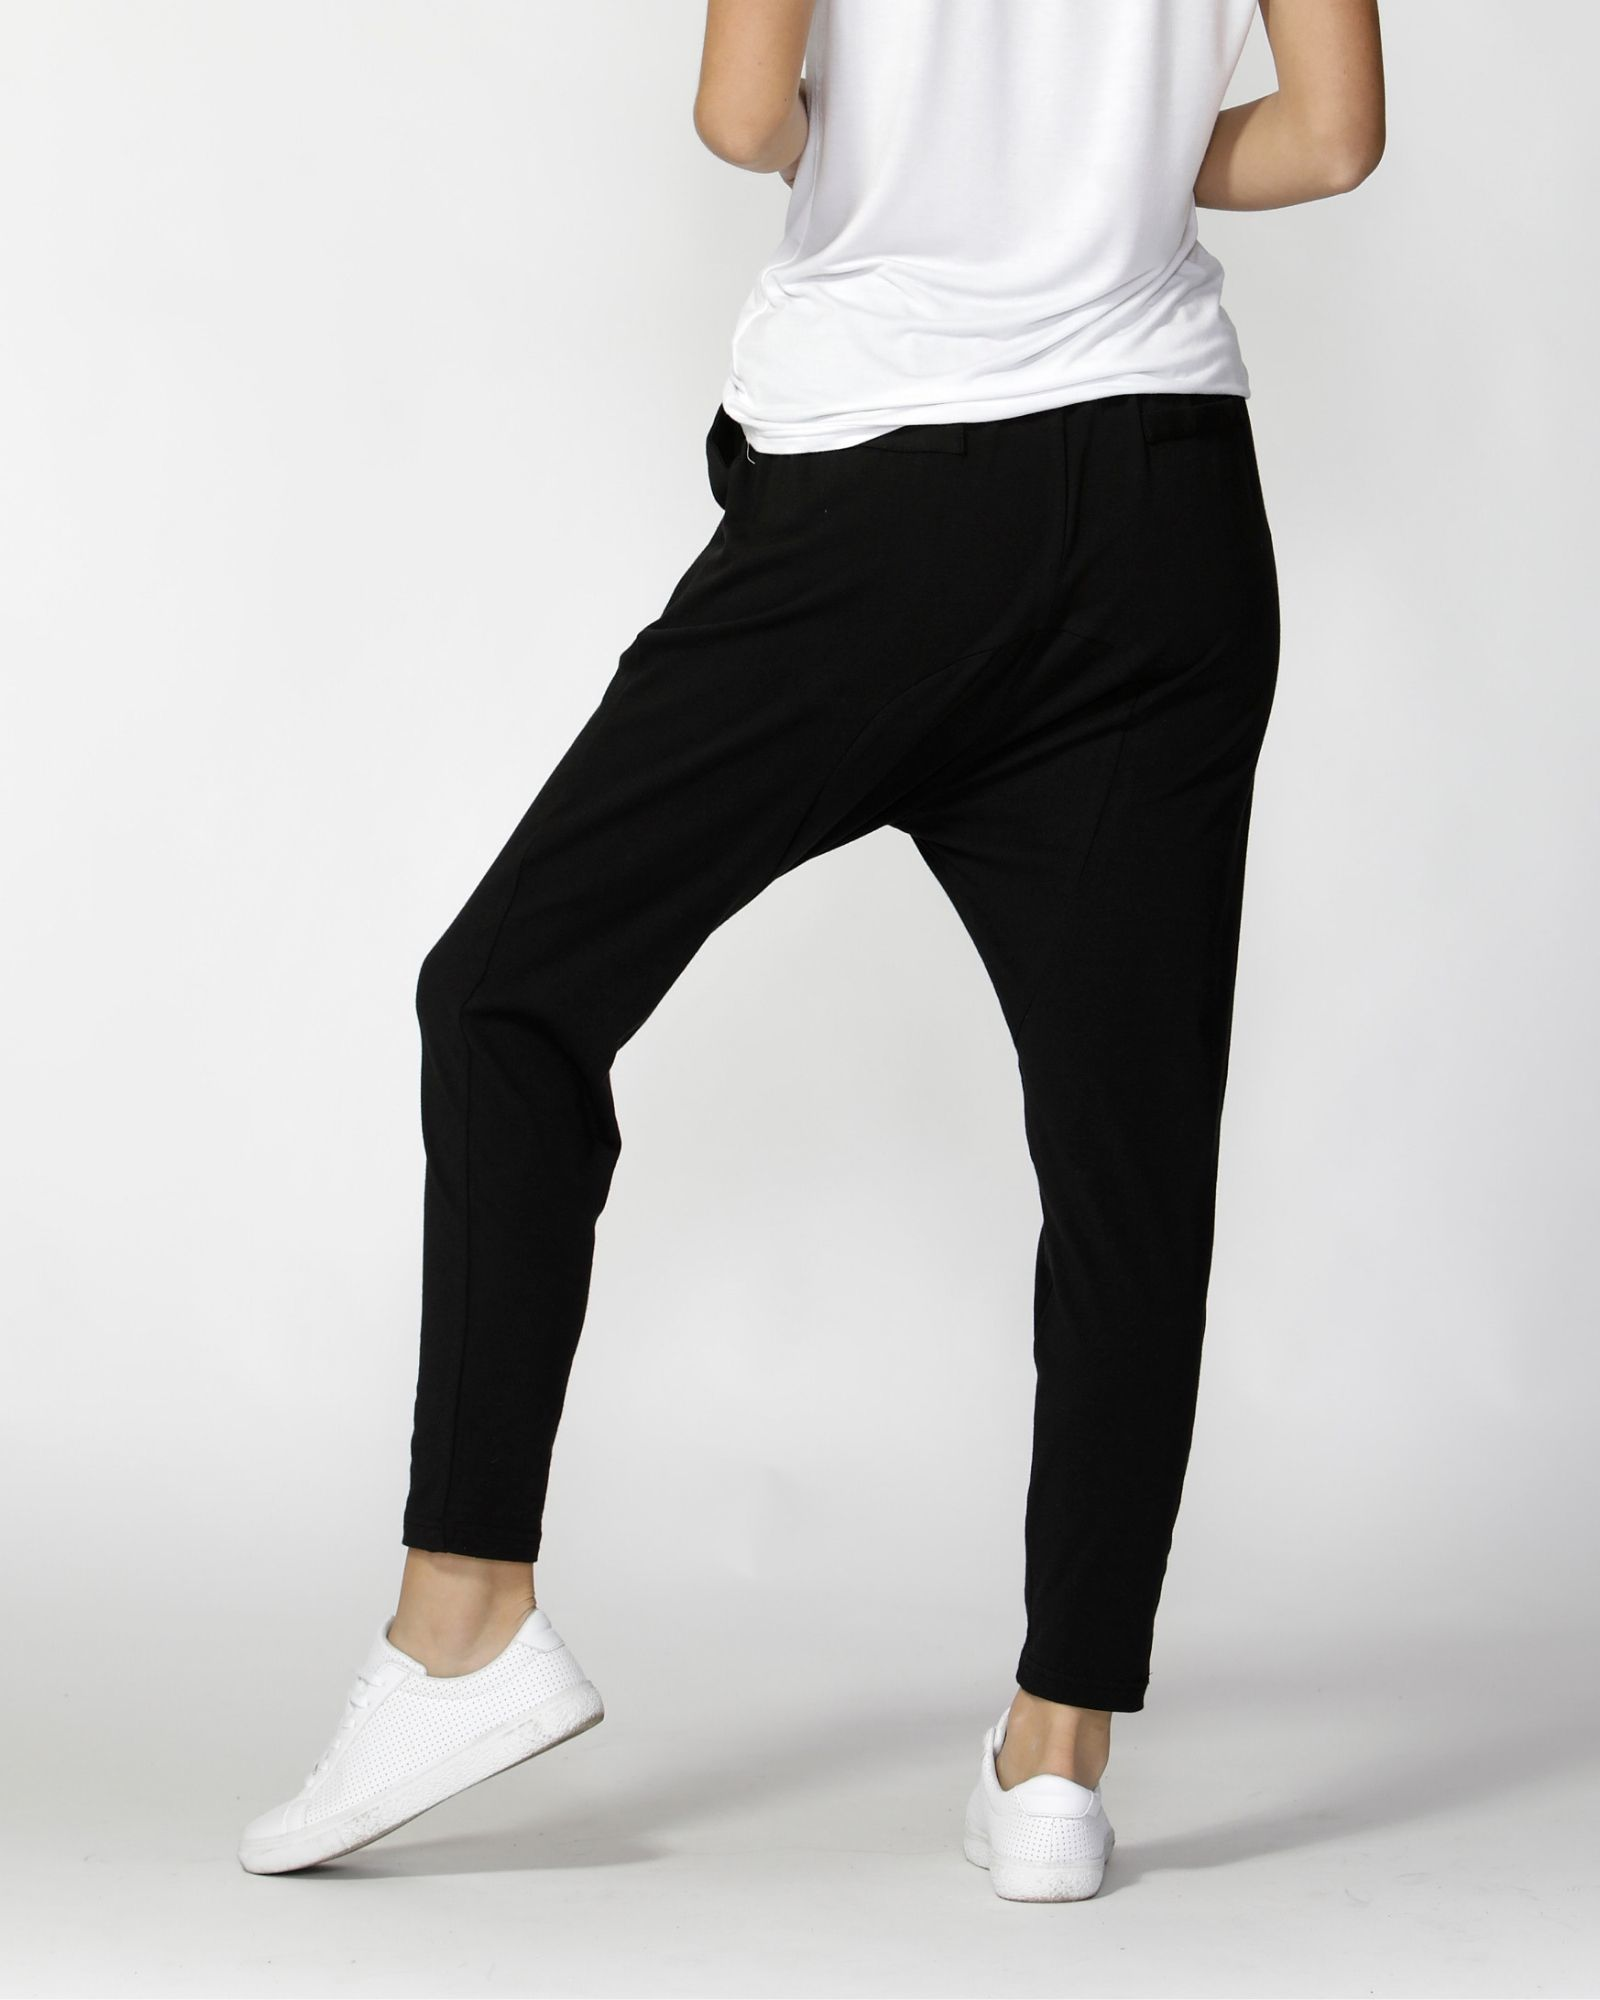 Betty Basics - Jade Pants - Black Womens Betty Basics